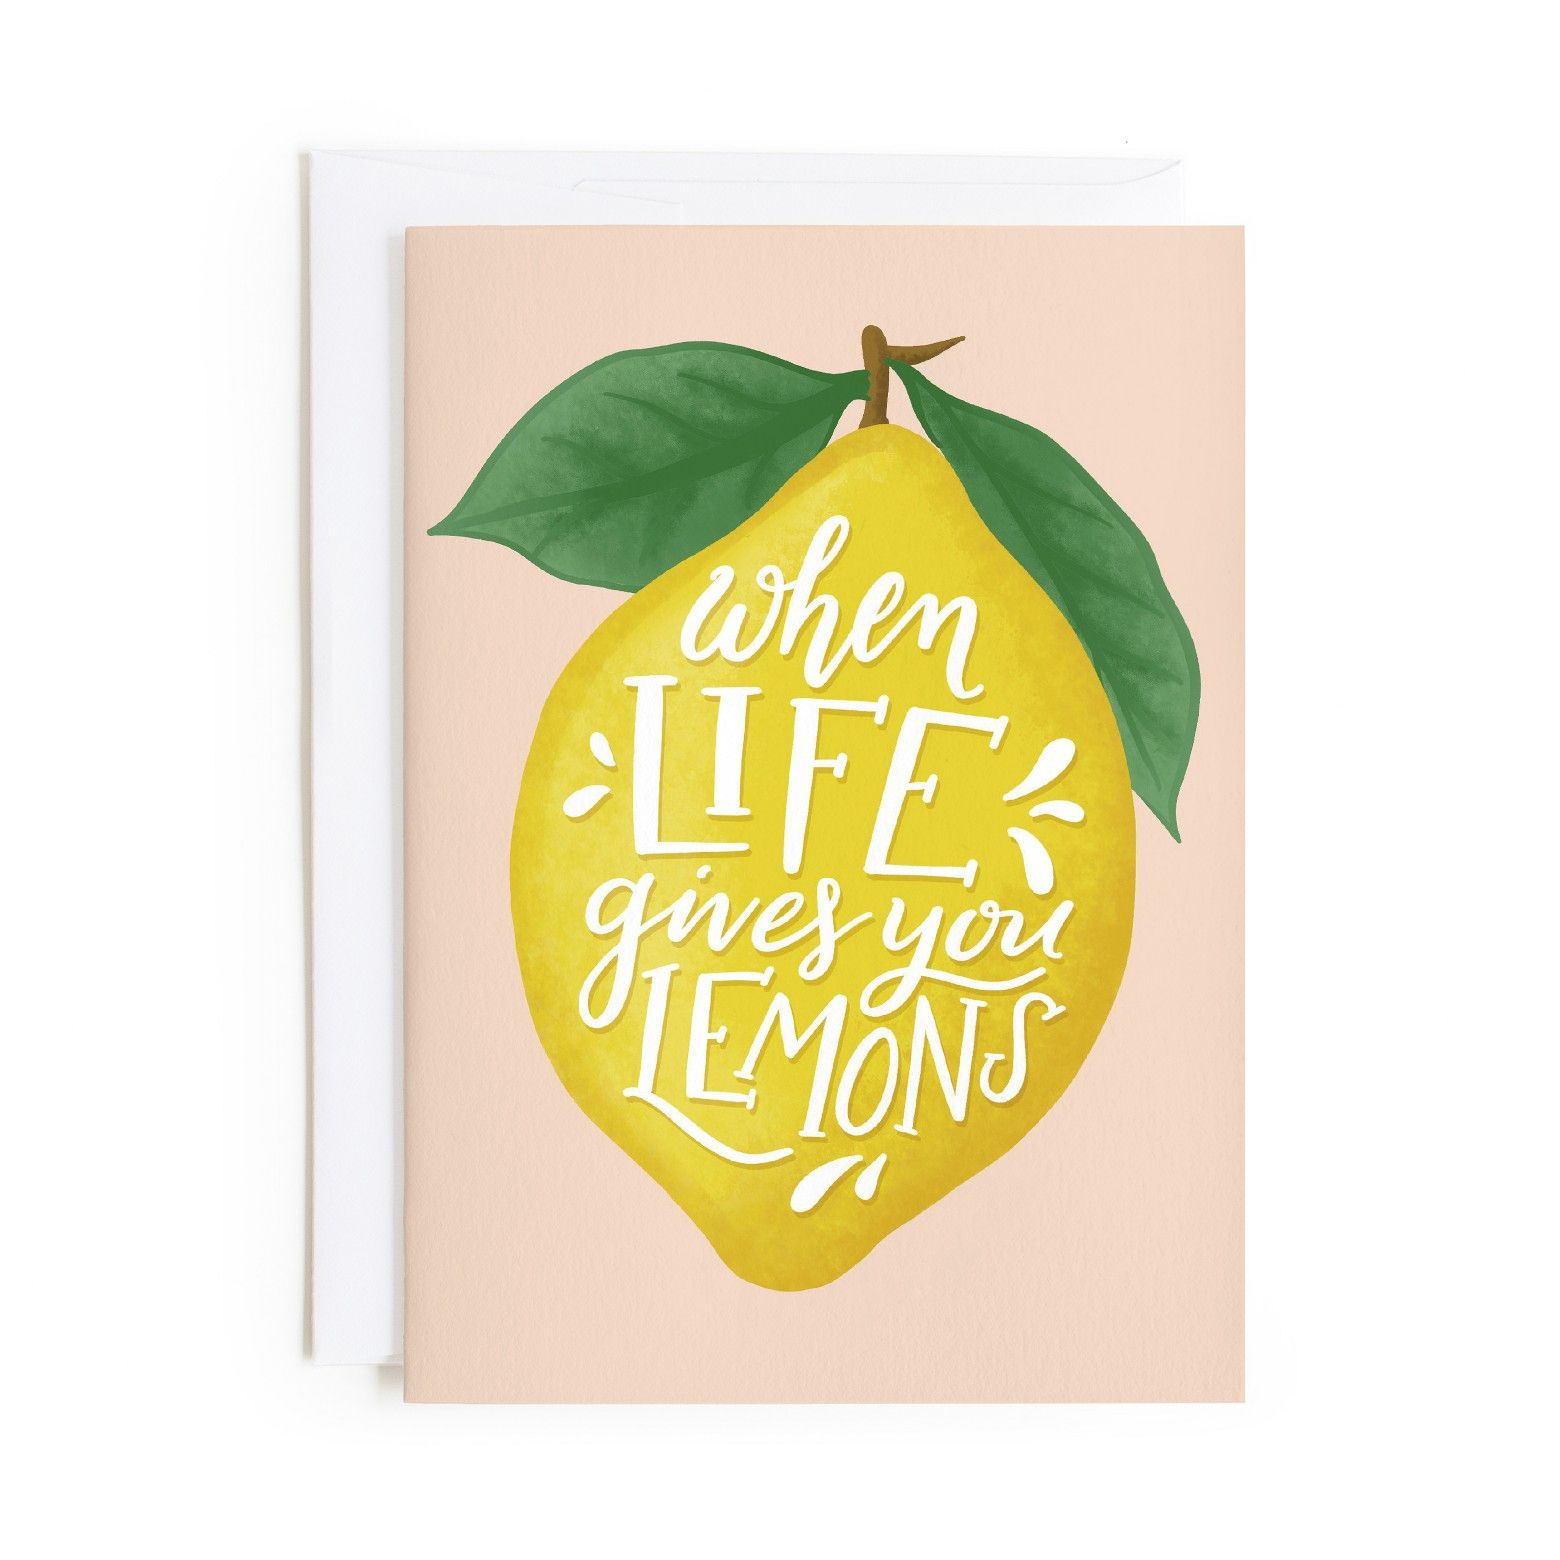 When Life Gives You Lemons Friends Card Greetingcard Ad Card